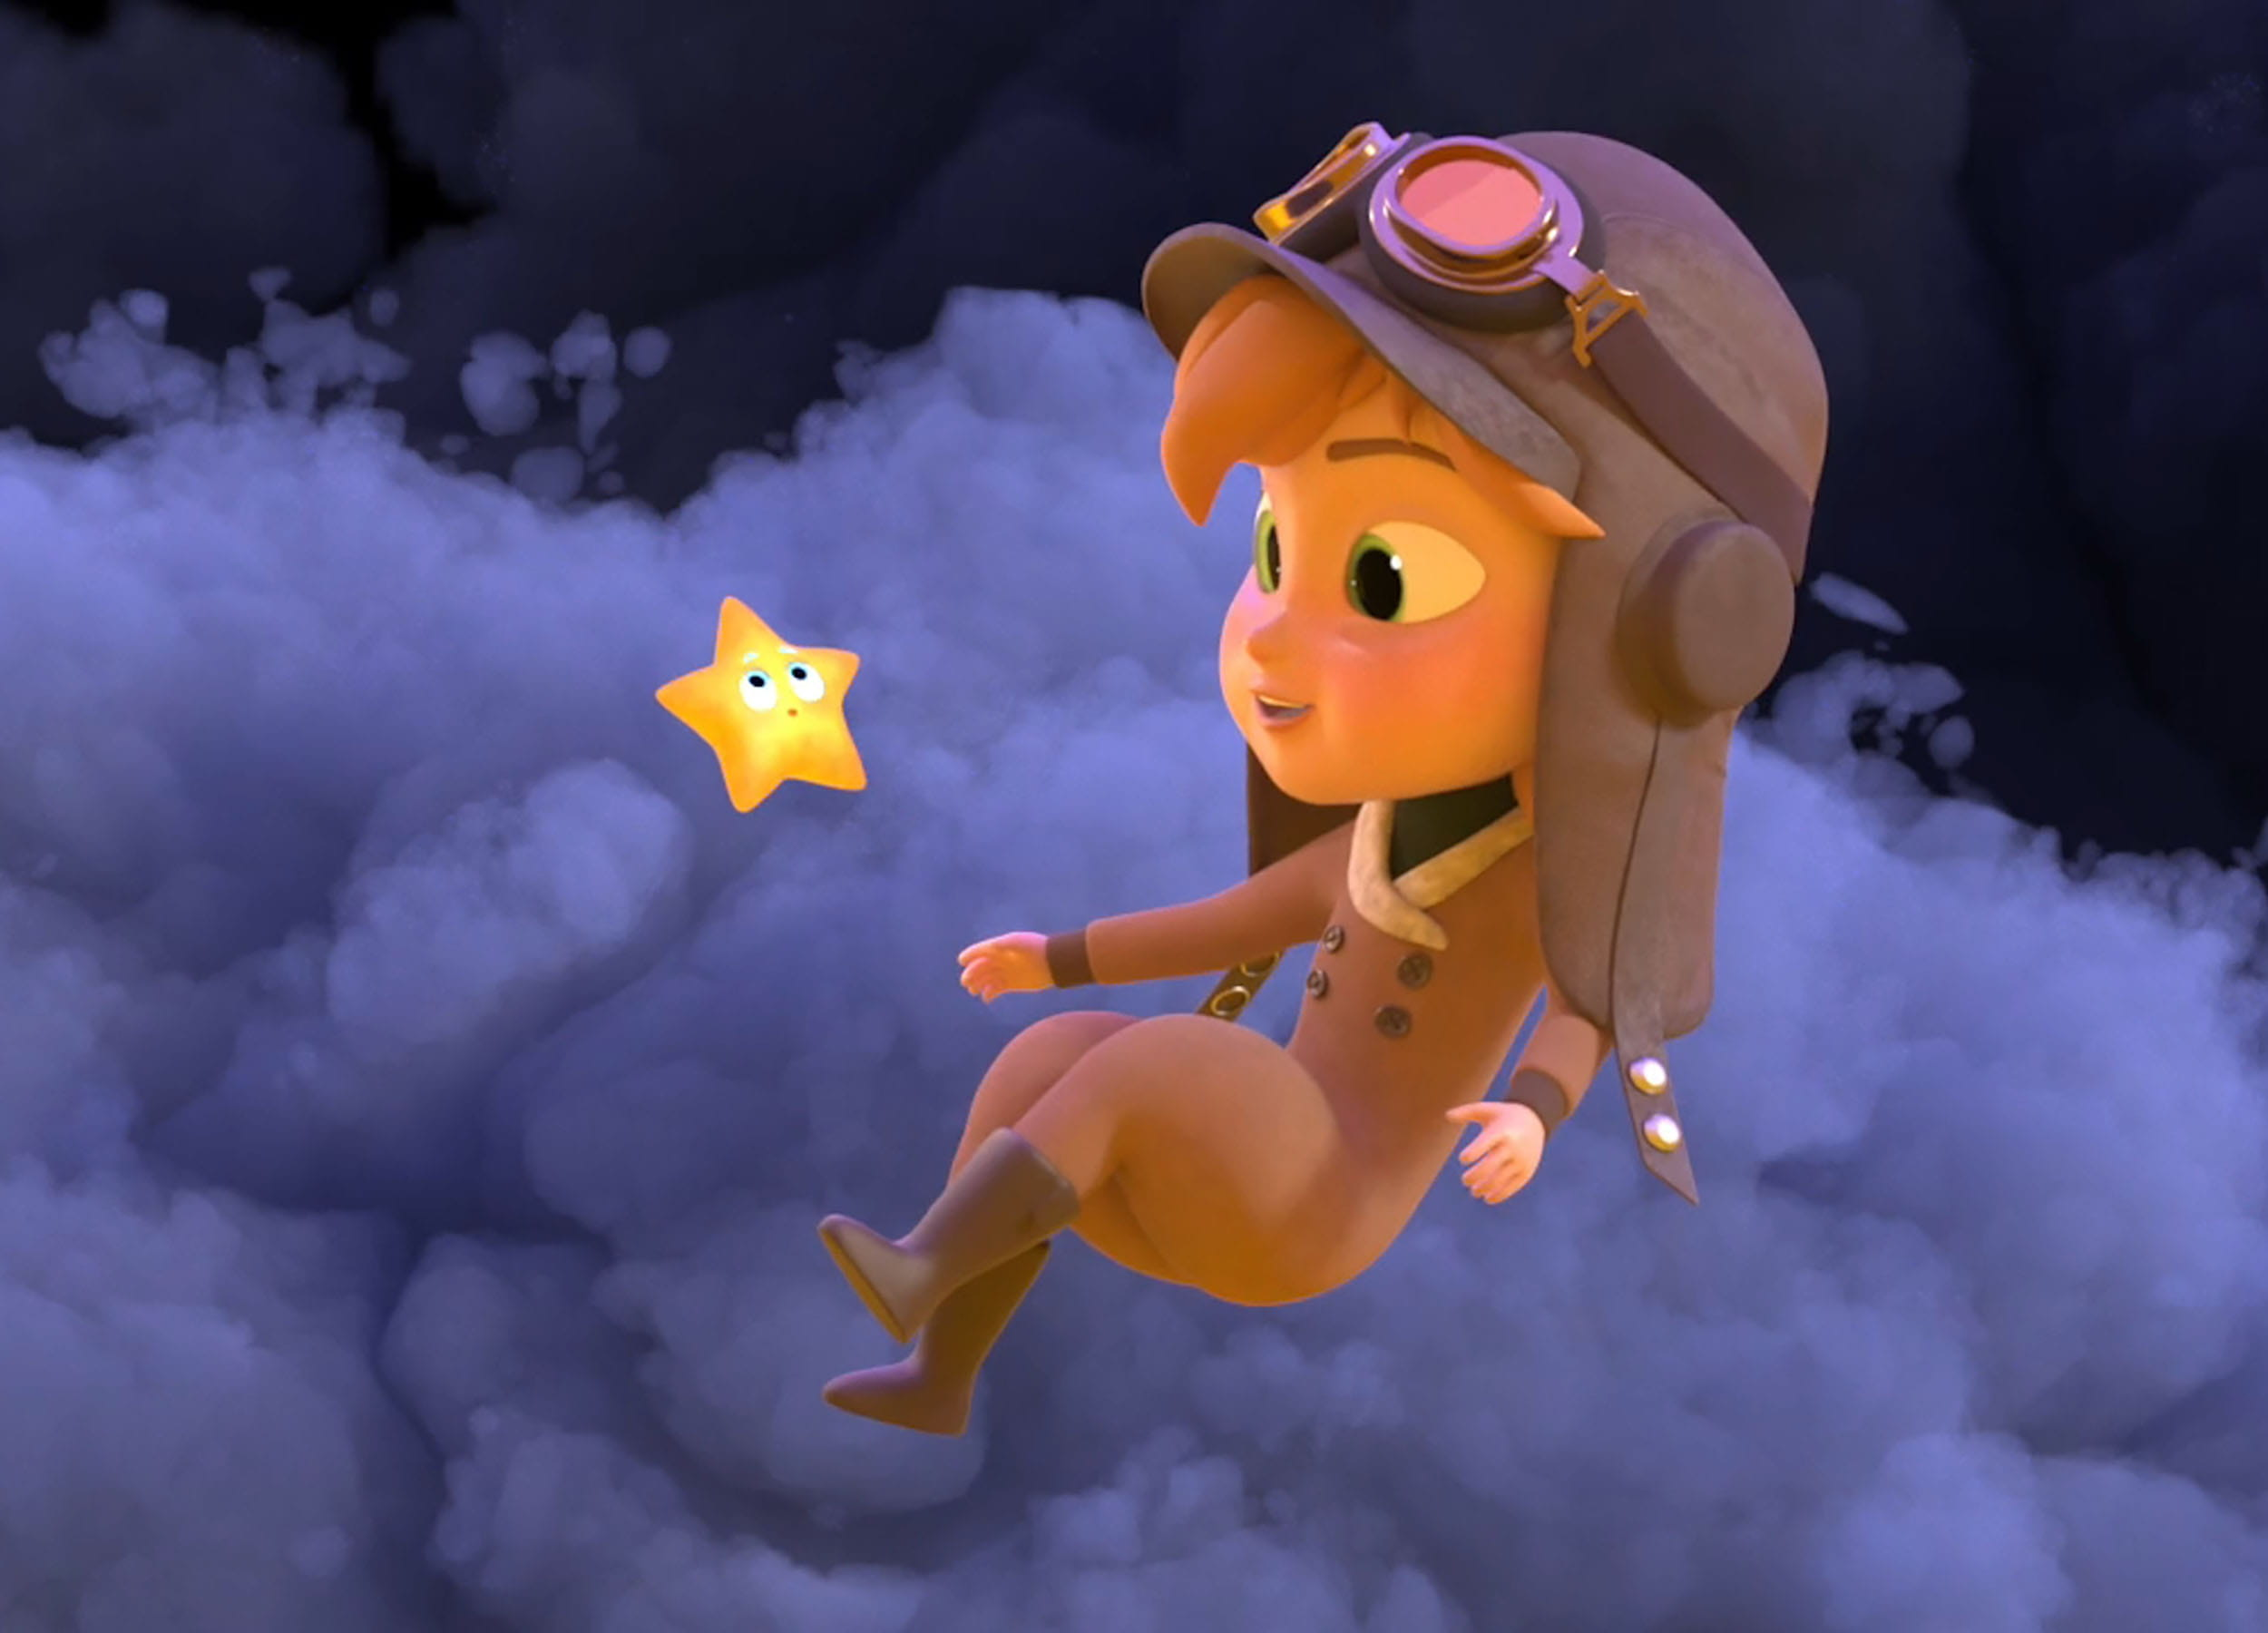 Computer-animated scene: a young girl wearing a pilot's hat and goggles on her head, floating in the clouds and looking at a star that's right in front of her.